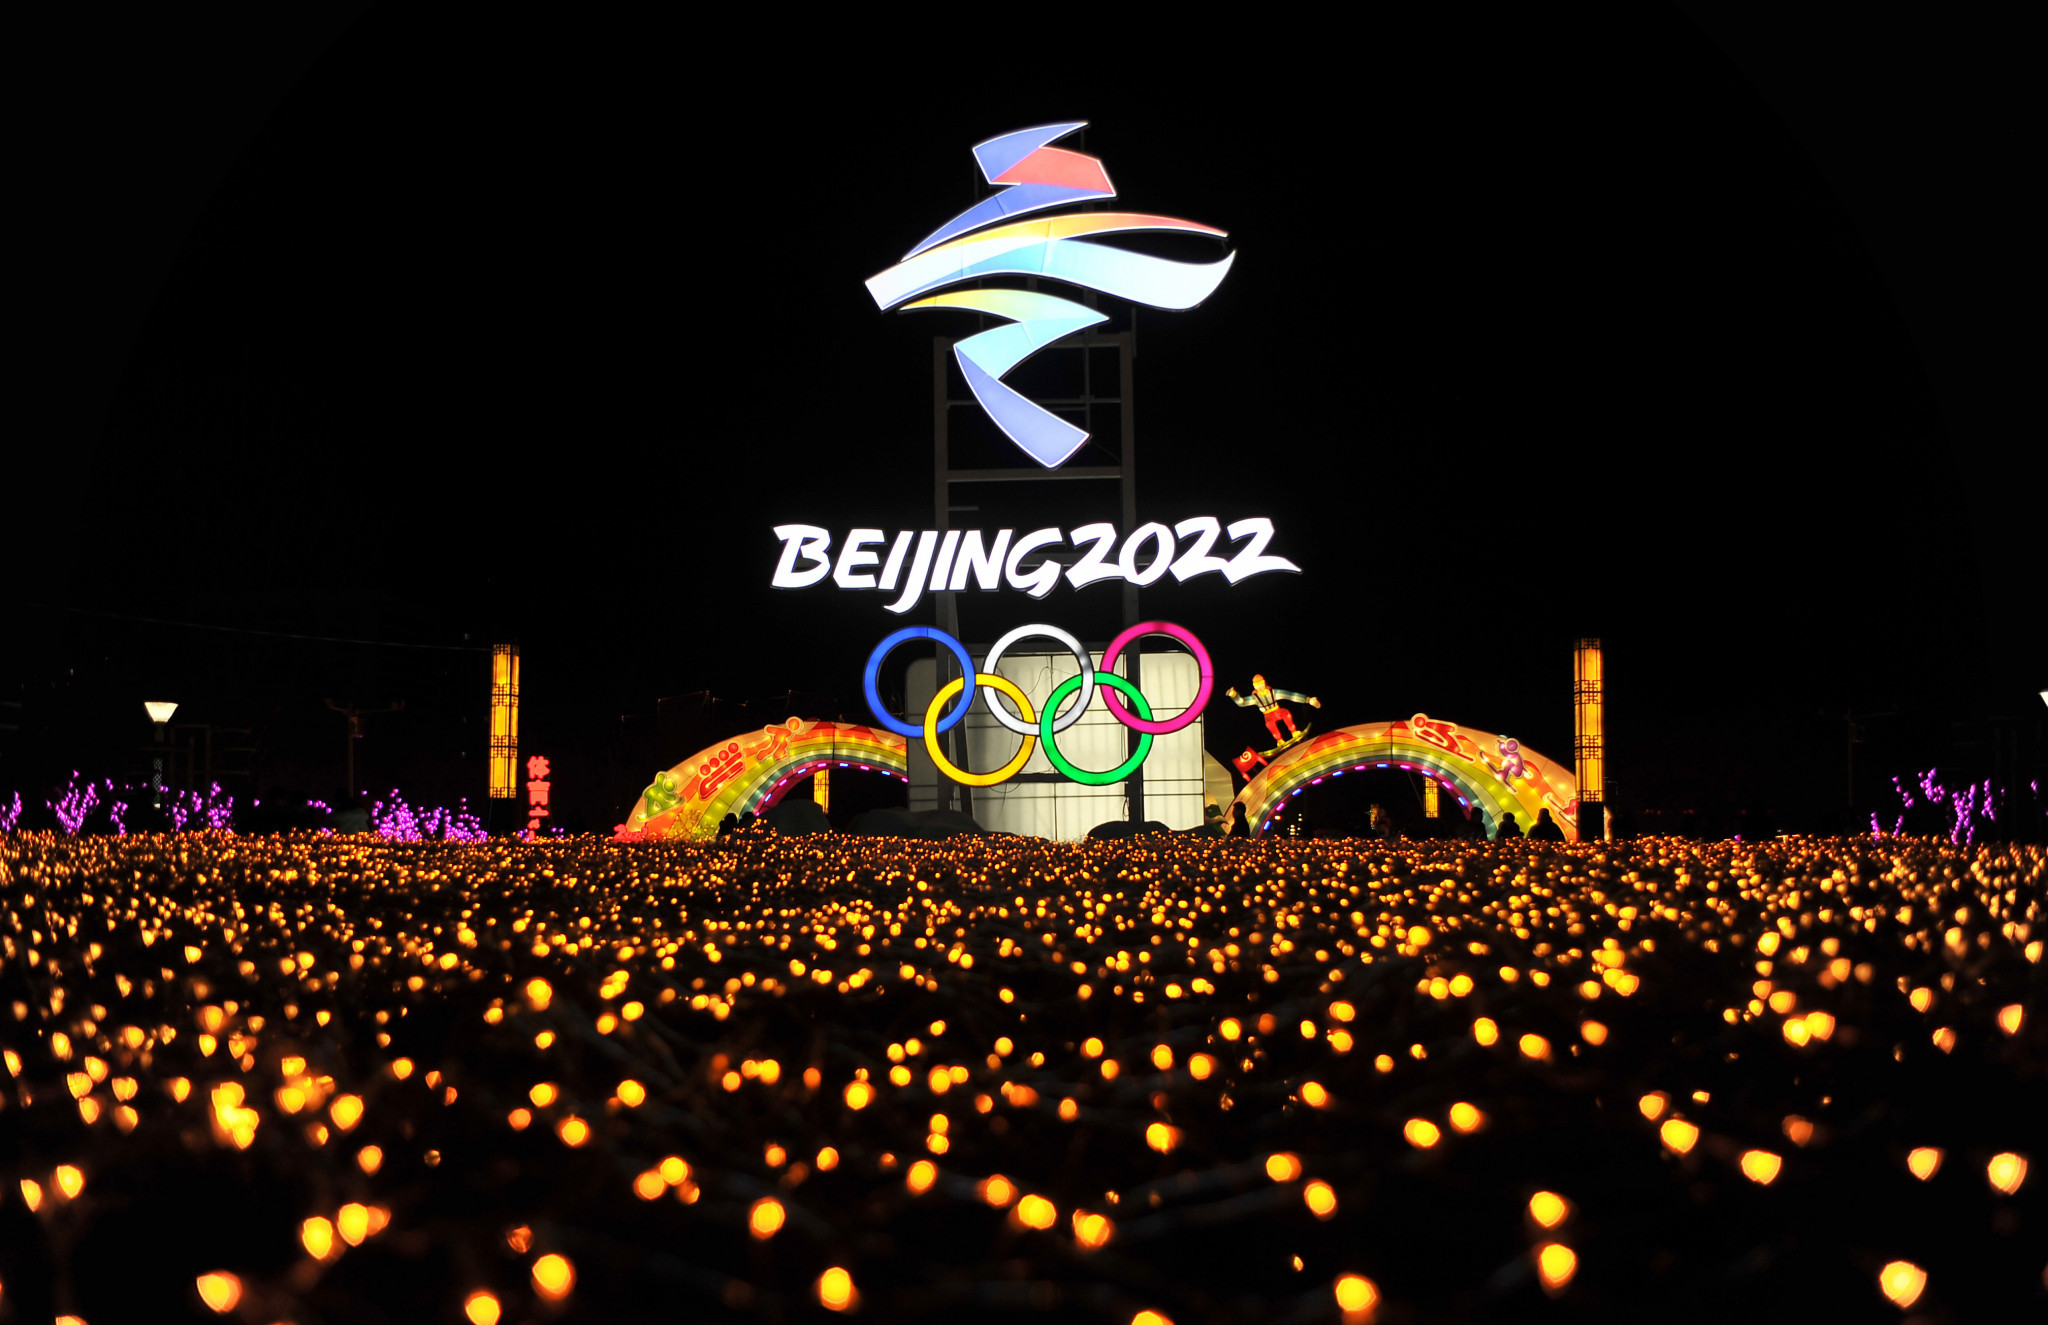 Beijing 2022 looking to learn from Pyeongchang 2018